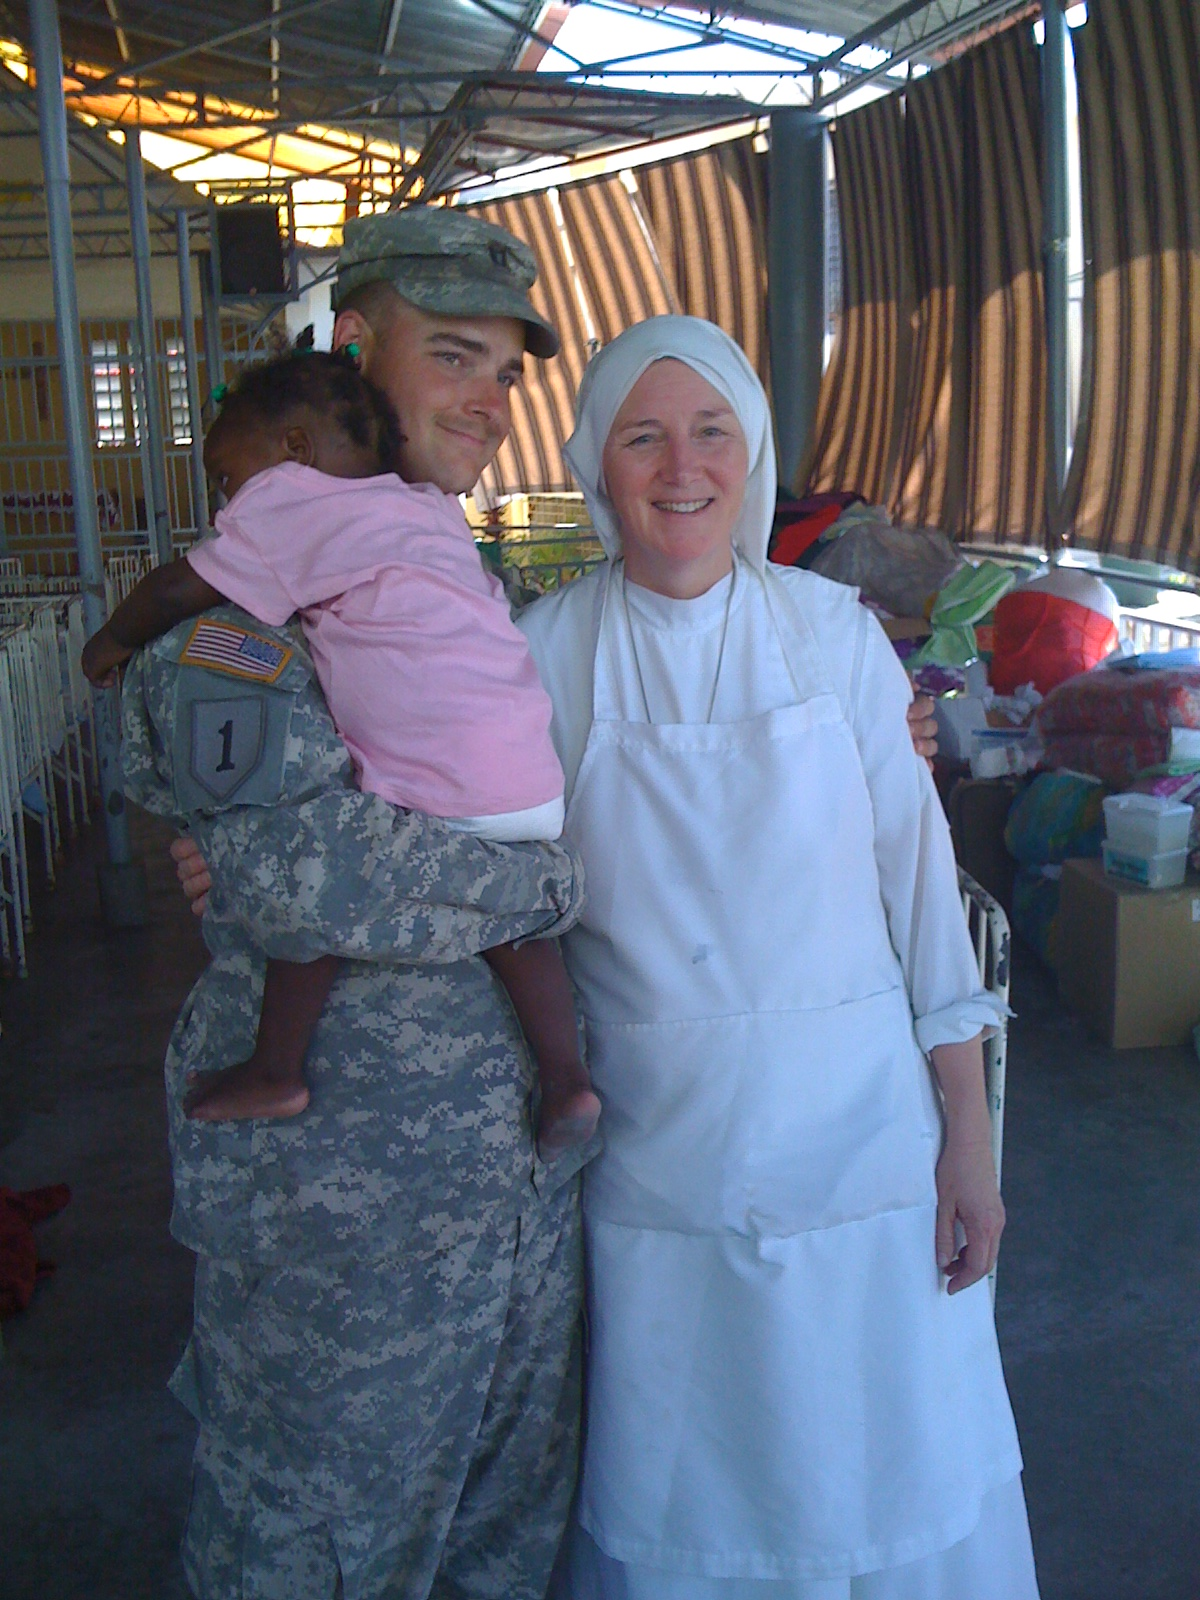 antes fort catholic single women Greetings from fort bragg's military council of catholic women all women are invited to join in our weekly study groups and service activities enjoy the site and please don't hesitate to contact us at mccw_fort_bragg@hotmailcom for more information.